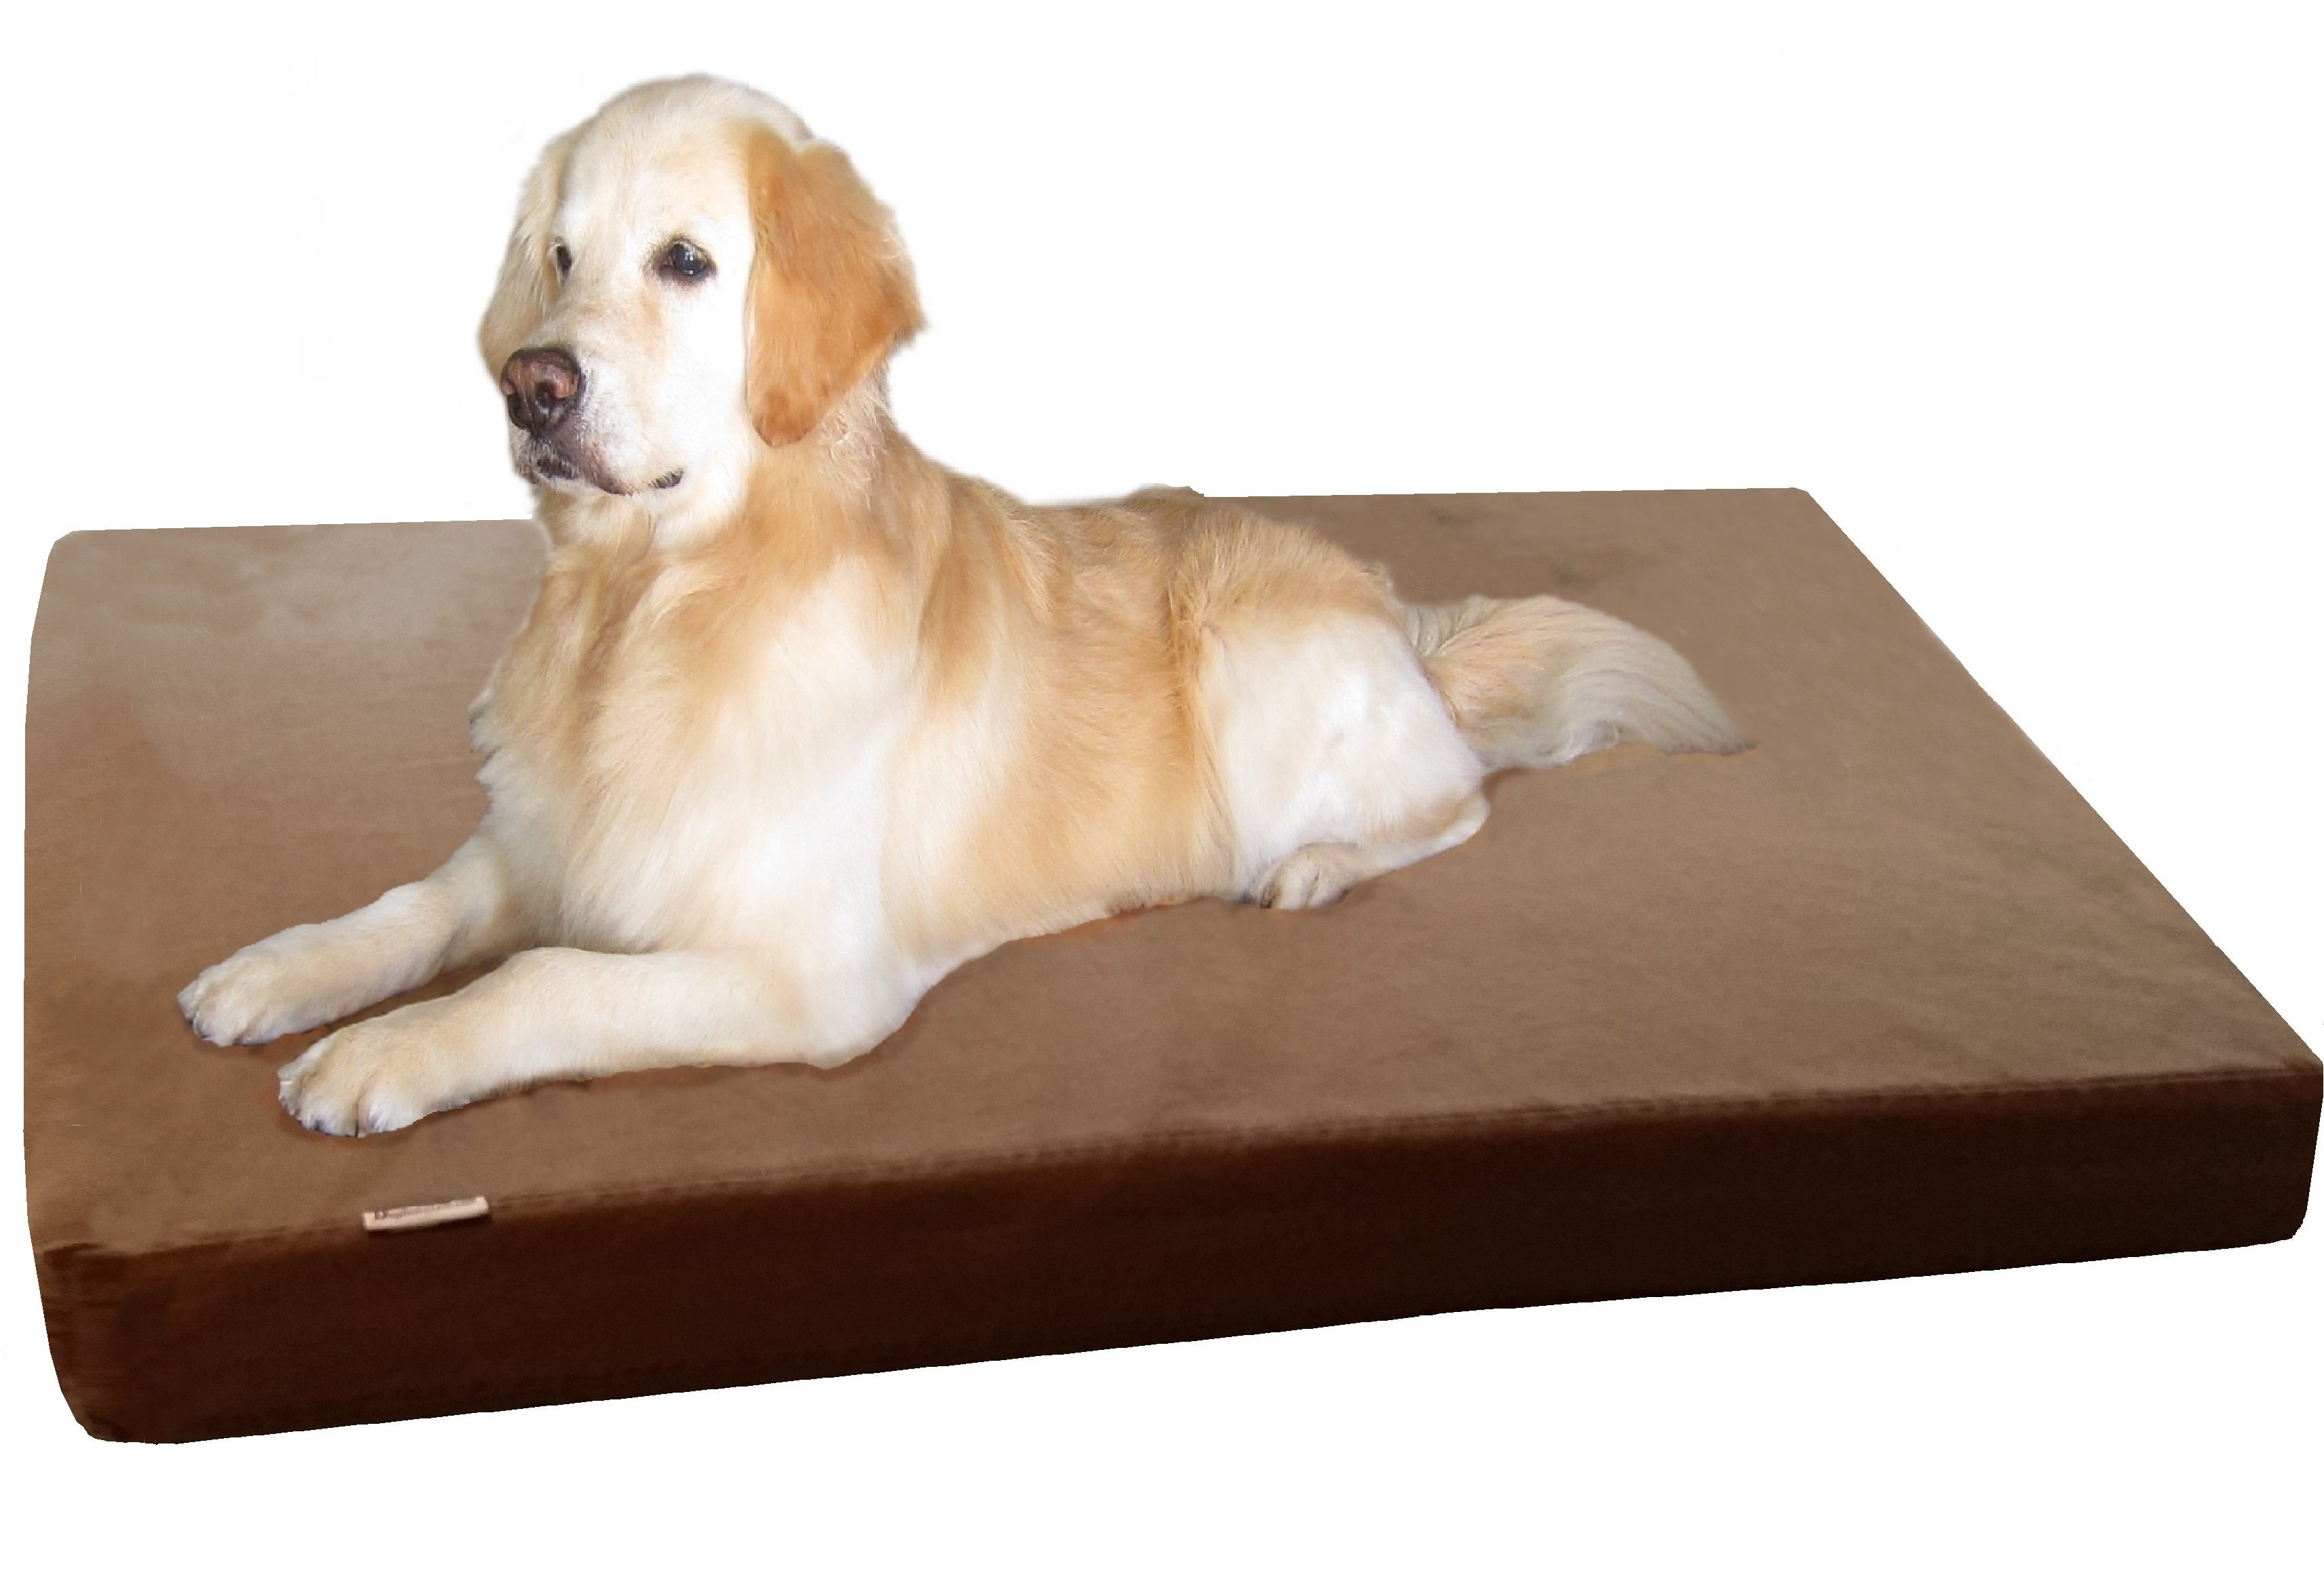 jumbo memory foam dog bed with durable waterproof cover for big